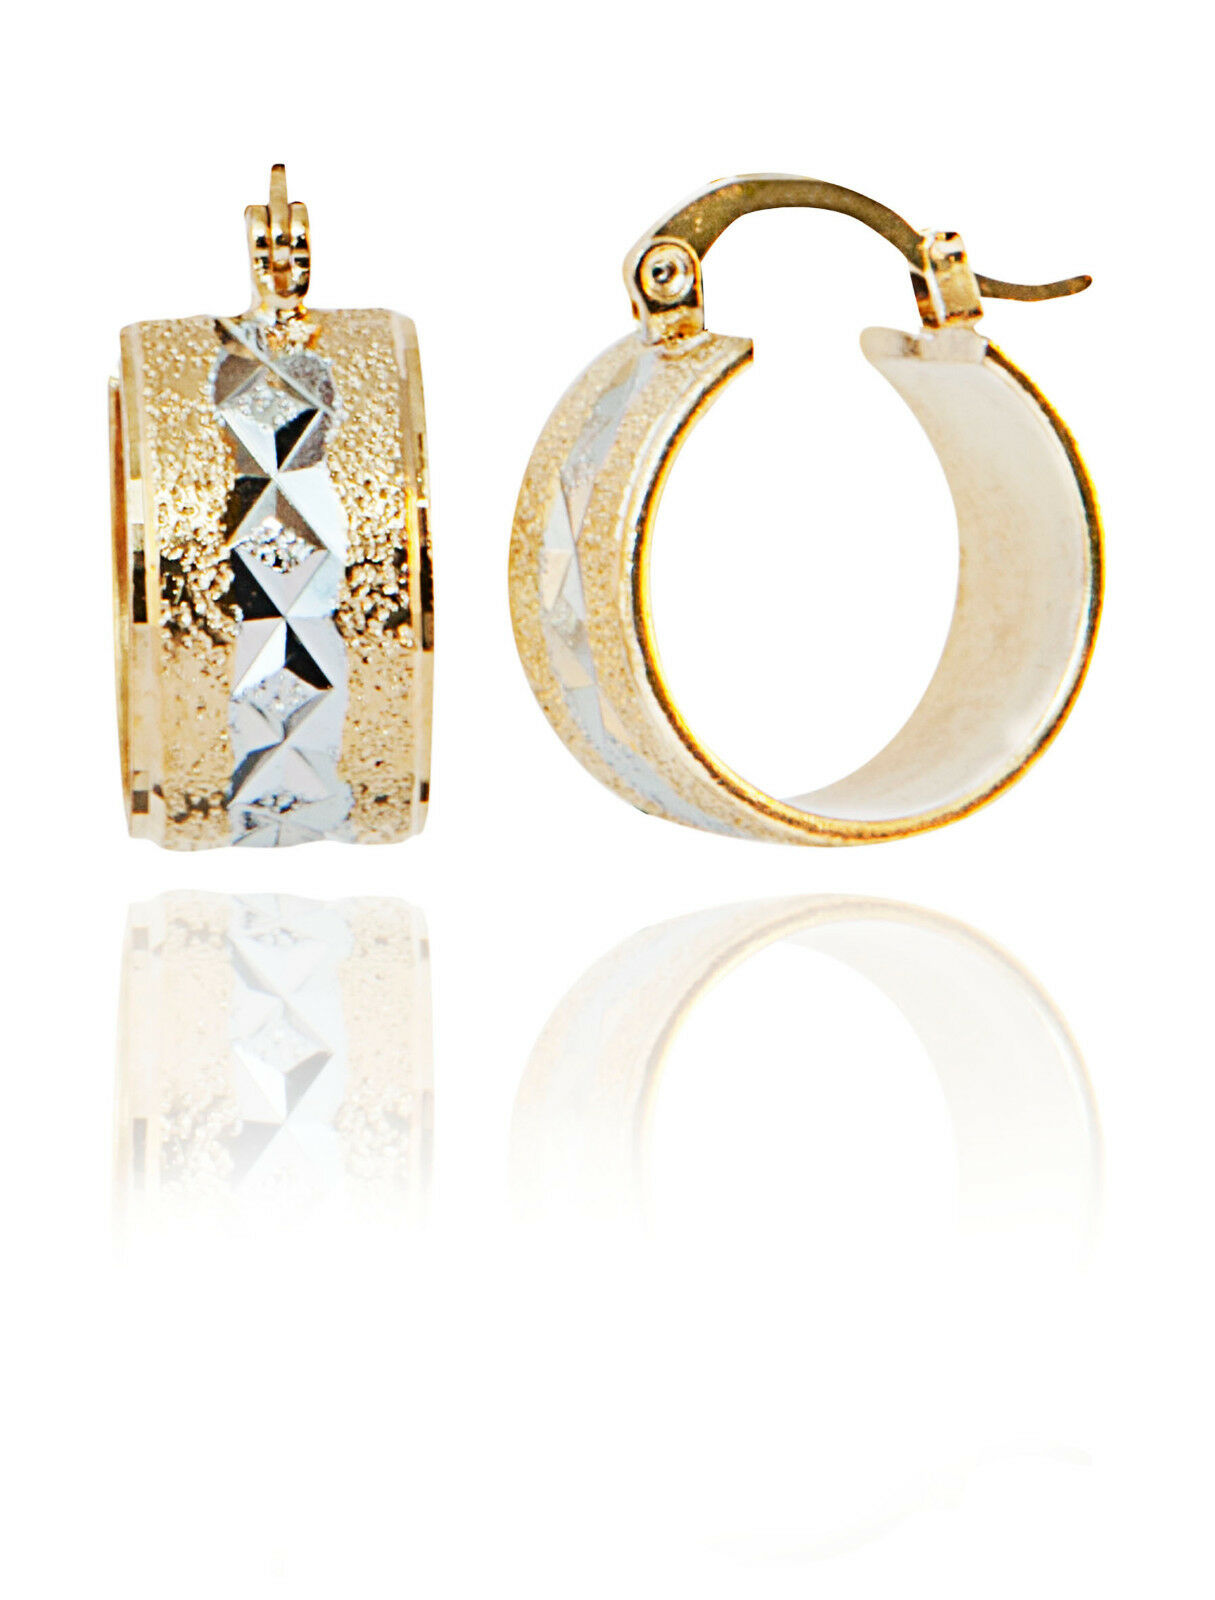 Hoop Huggie Sttyle Earrings with Two Tone Yellow Gold & engraved Rhodium Plating